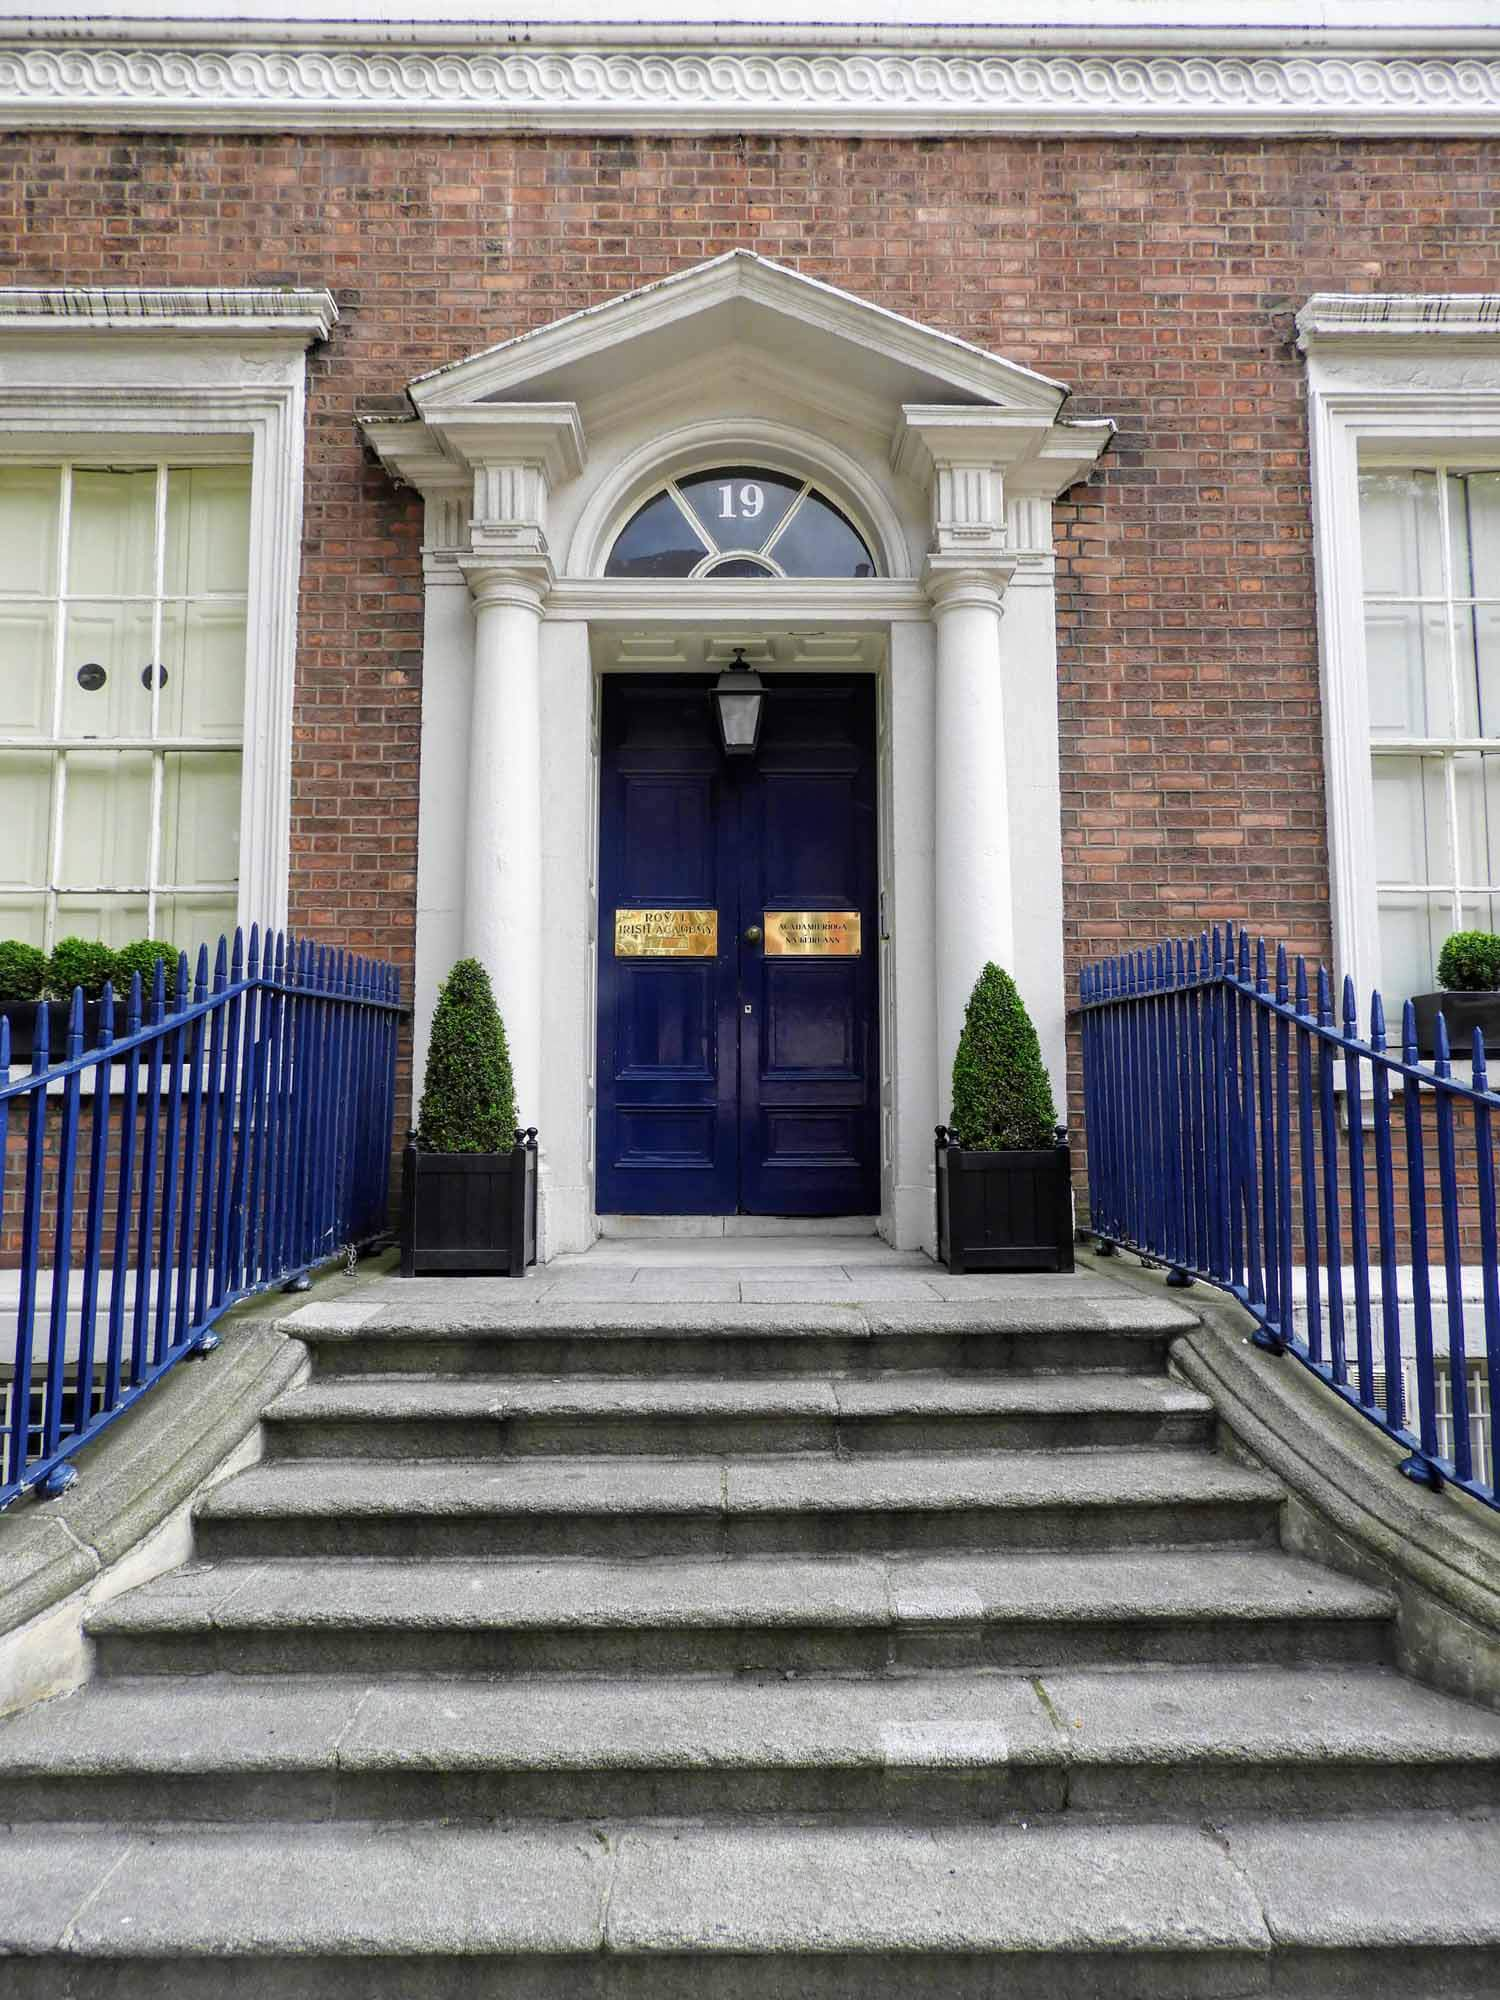 ireland-dublin-blue-door-steps-red-brick.jpg